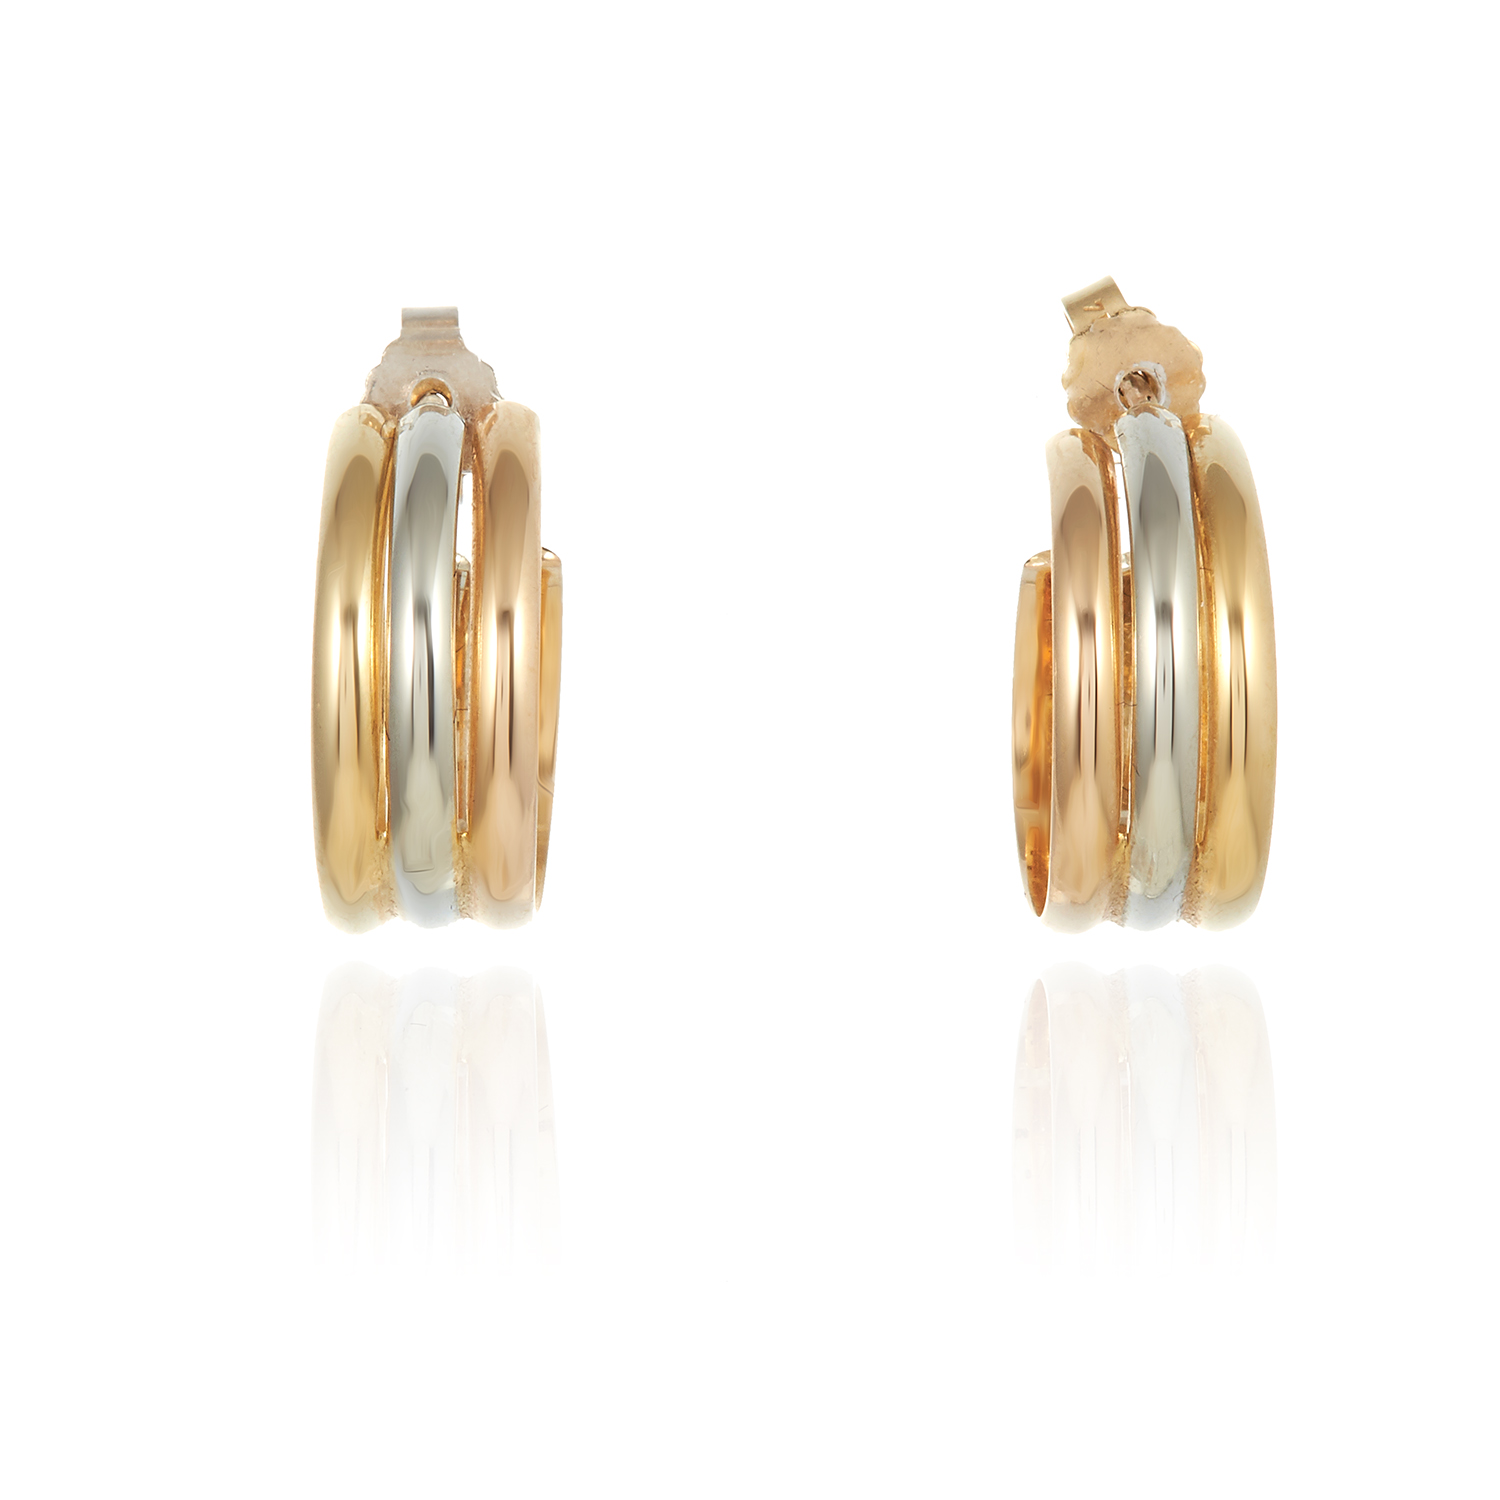 Los 11 - AN VINTAGE TRINITY DE CARTIER RING AND EARRINGS SUITE in 18ct gold, each formed of a trio of